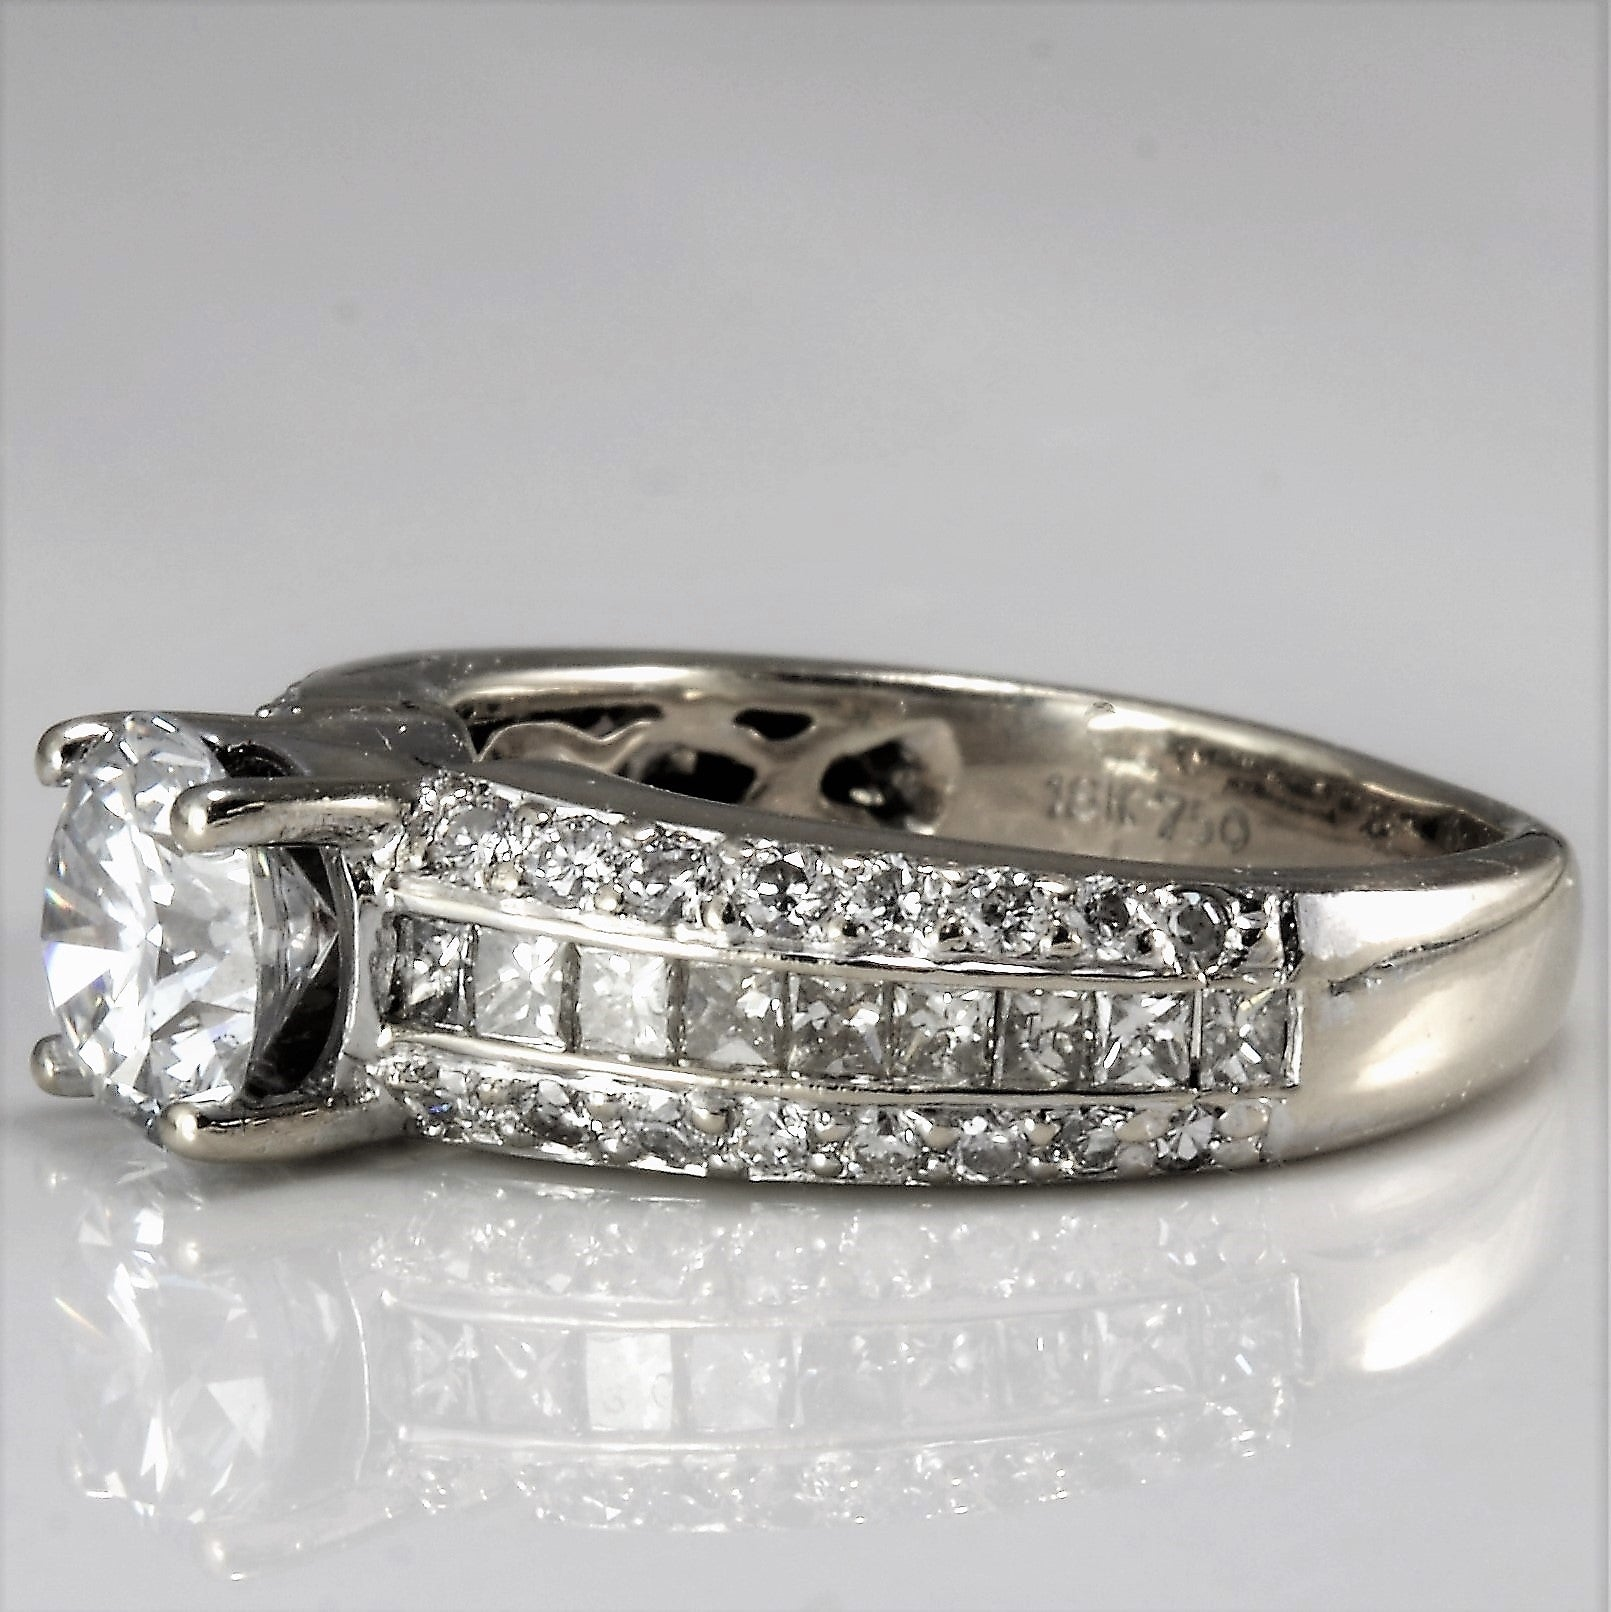 Exceptional Wide Band Pave Engagement Ring | 1.80 ctw, SZ 5.25 |